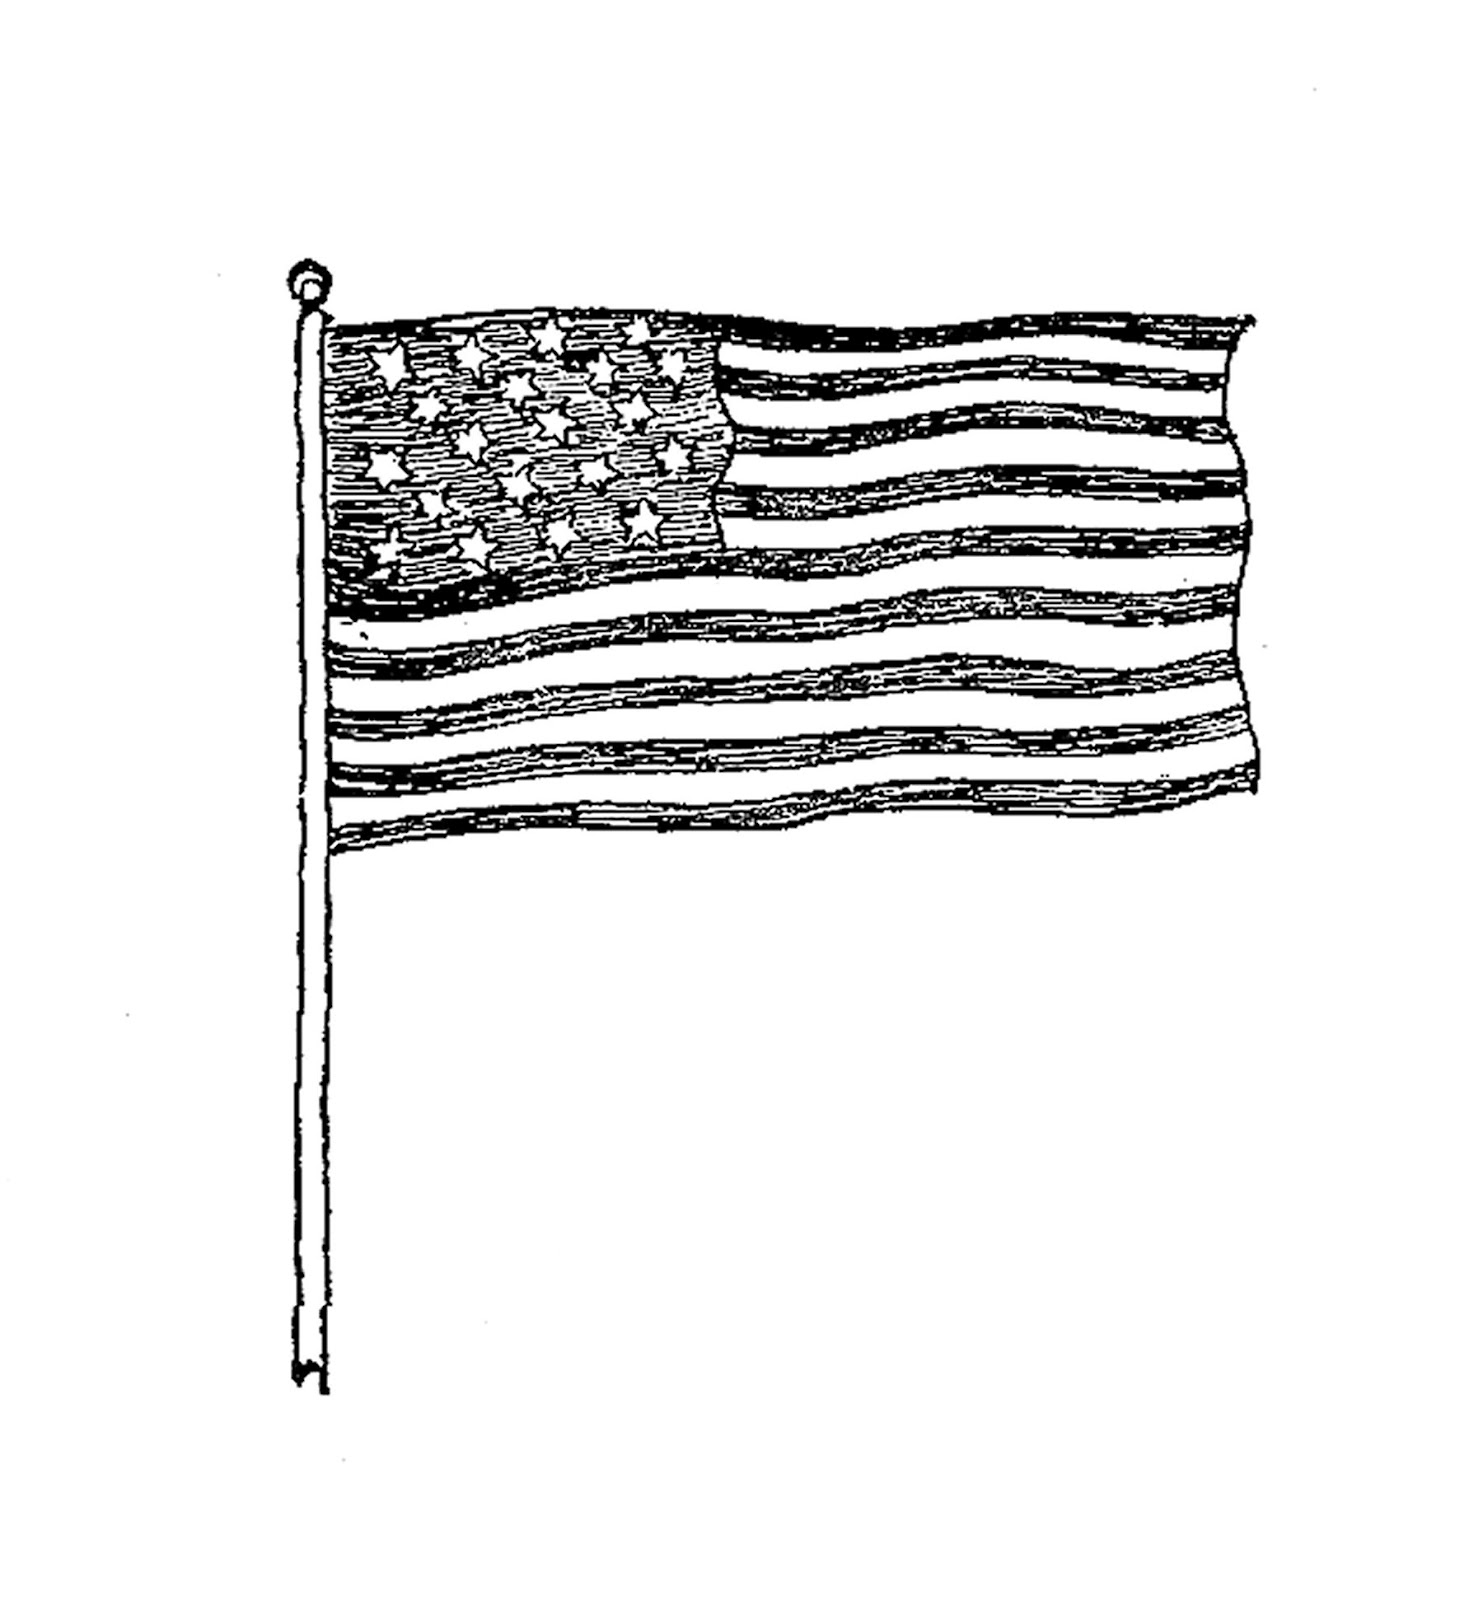 Free clipart american flag black and white picture transparent library Free American Flag Clip Art Black And White, Download Free Clip Art ... picture transparent library